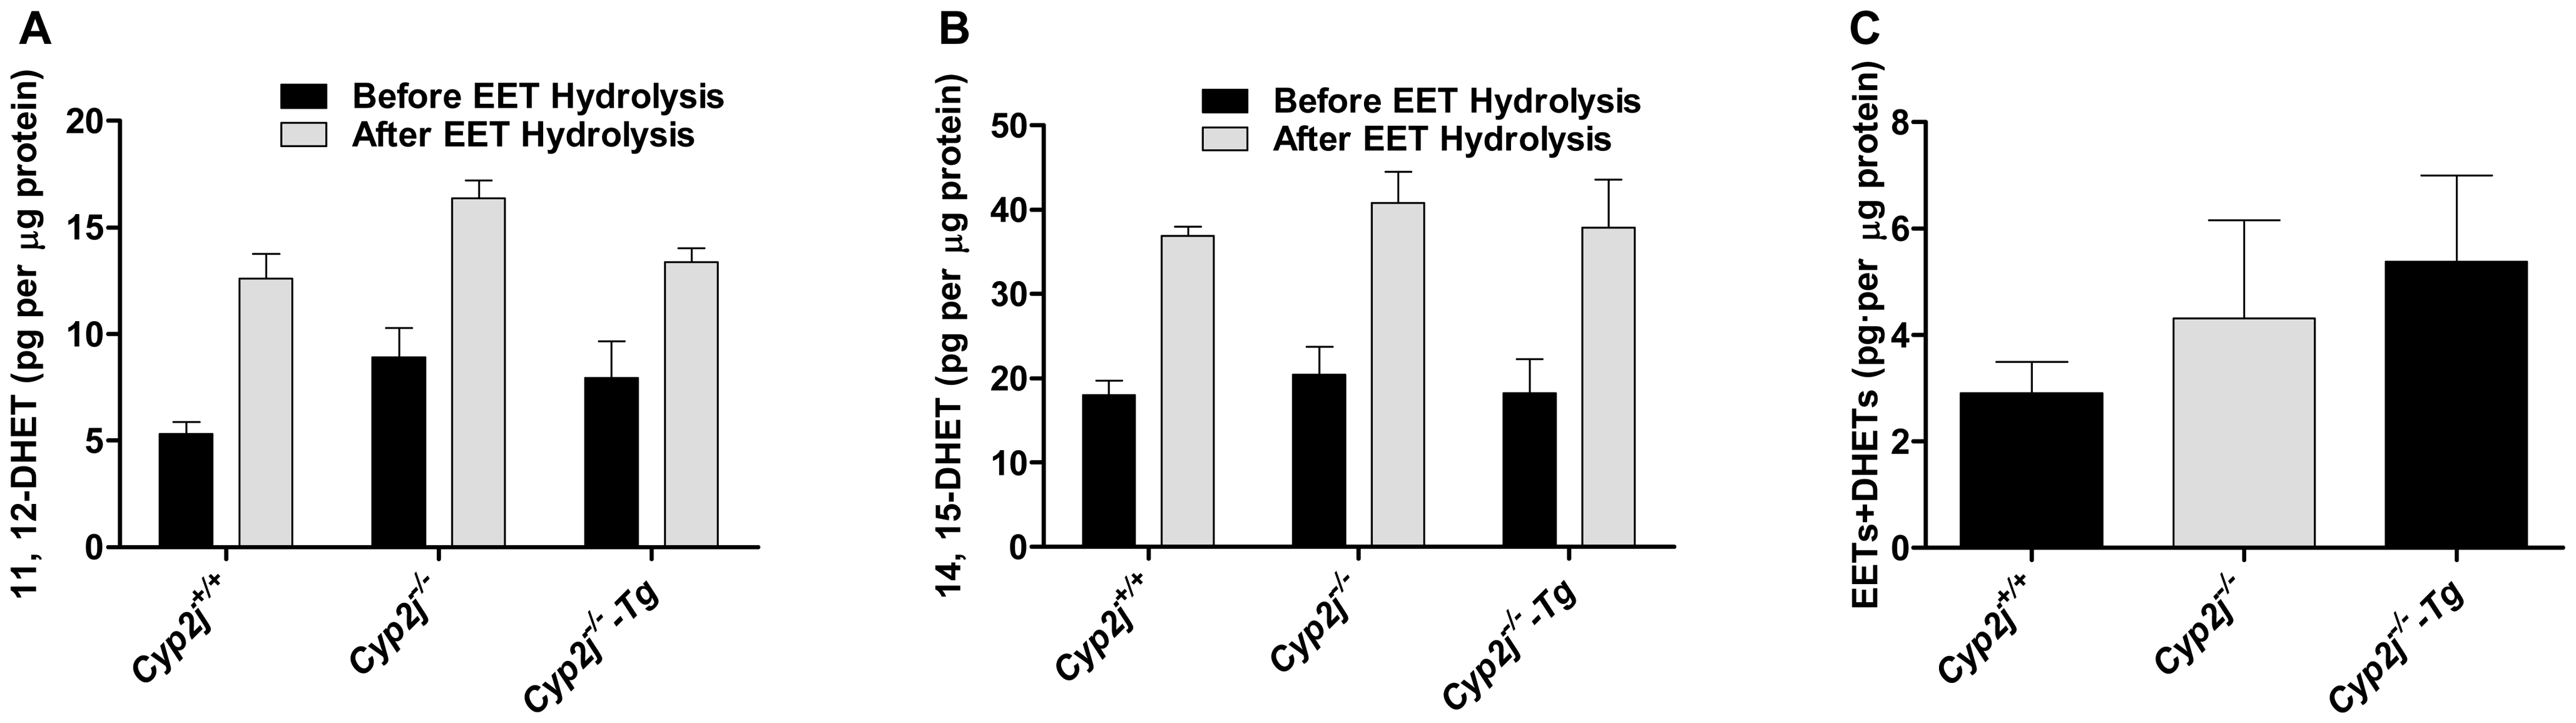 11, 12- and 14, 15-EETs measurements in BALF (A, B) and the generation of EETs and DHETs by pulmonary microsomes (C) of <i>Cyp2j<sup>+/+</sup></i>, <i>Cyp2j<sup>−/−</sup></i> and <i>Cyp2j<sup>−/−</sup>-Tg</i> mice.